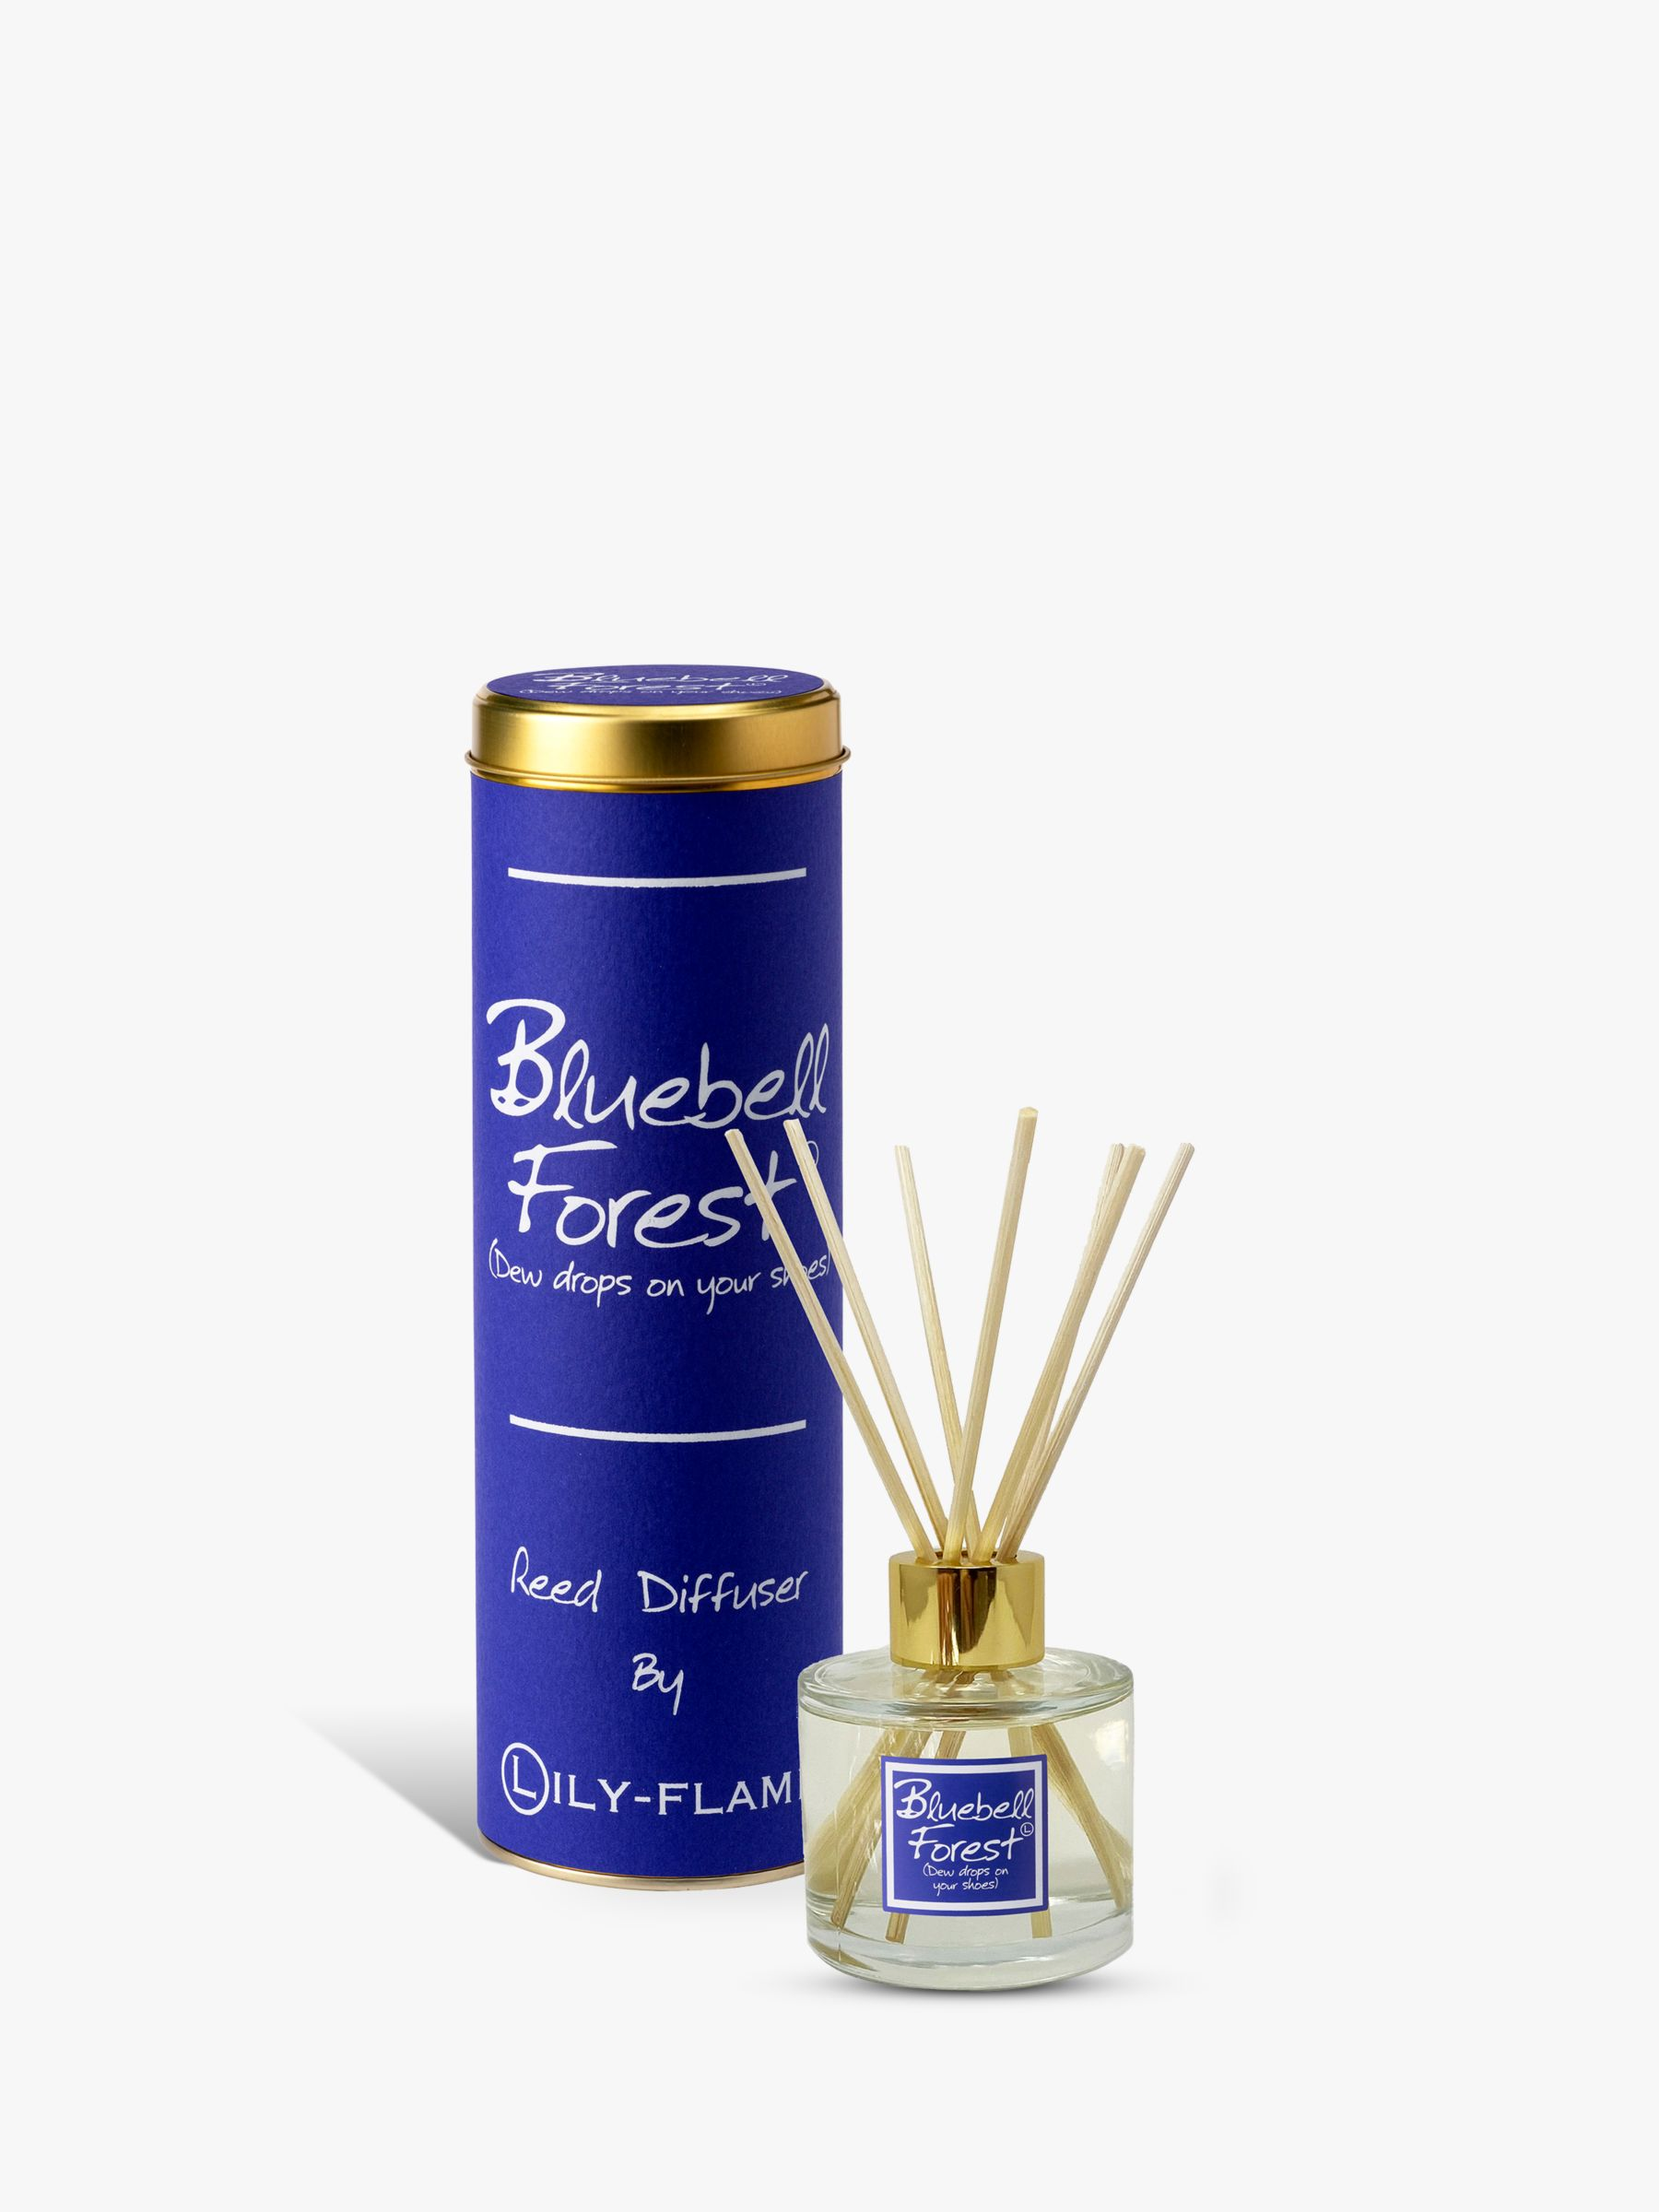 Lily-Flame Lily-flame Bluebell Forest Reed Diffuser, 100ml